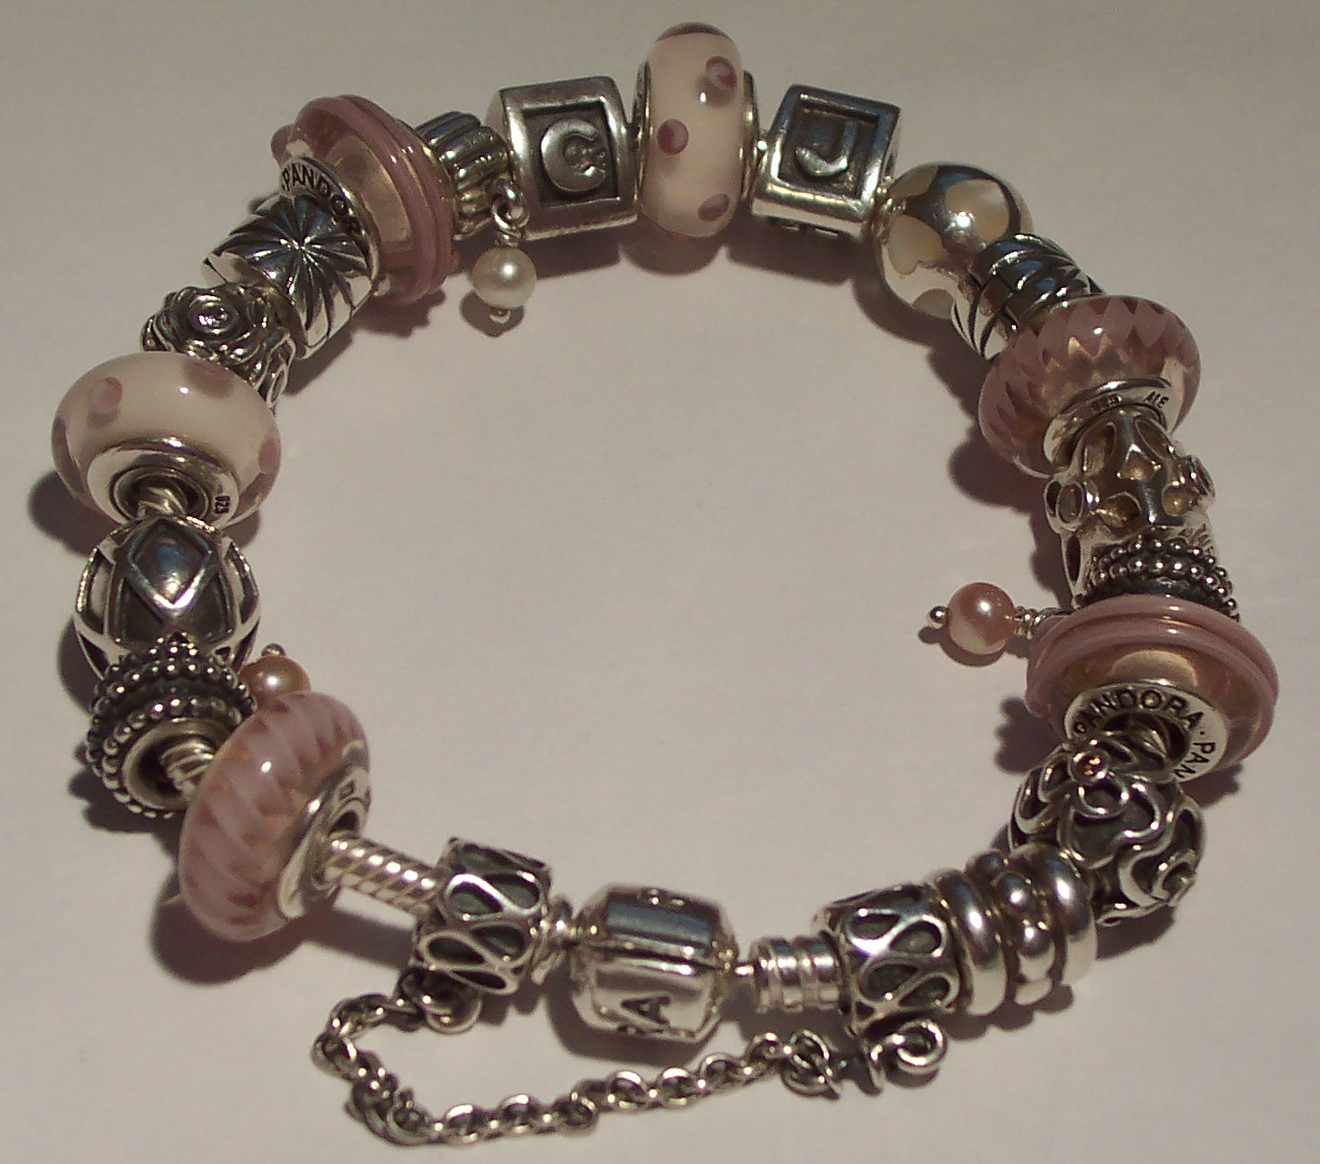 Bead Charm Bracelets: Charm Bracelets Are Best For Celebrating Your Memories